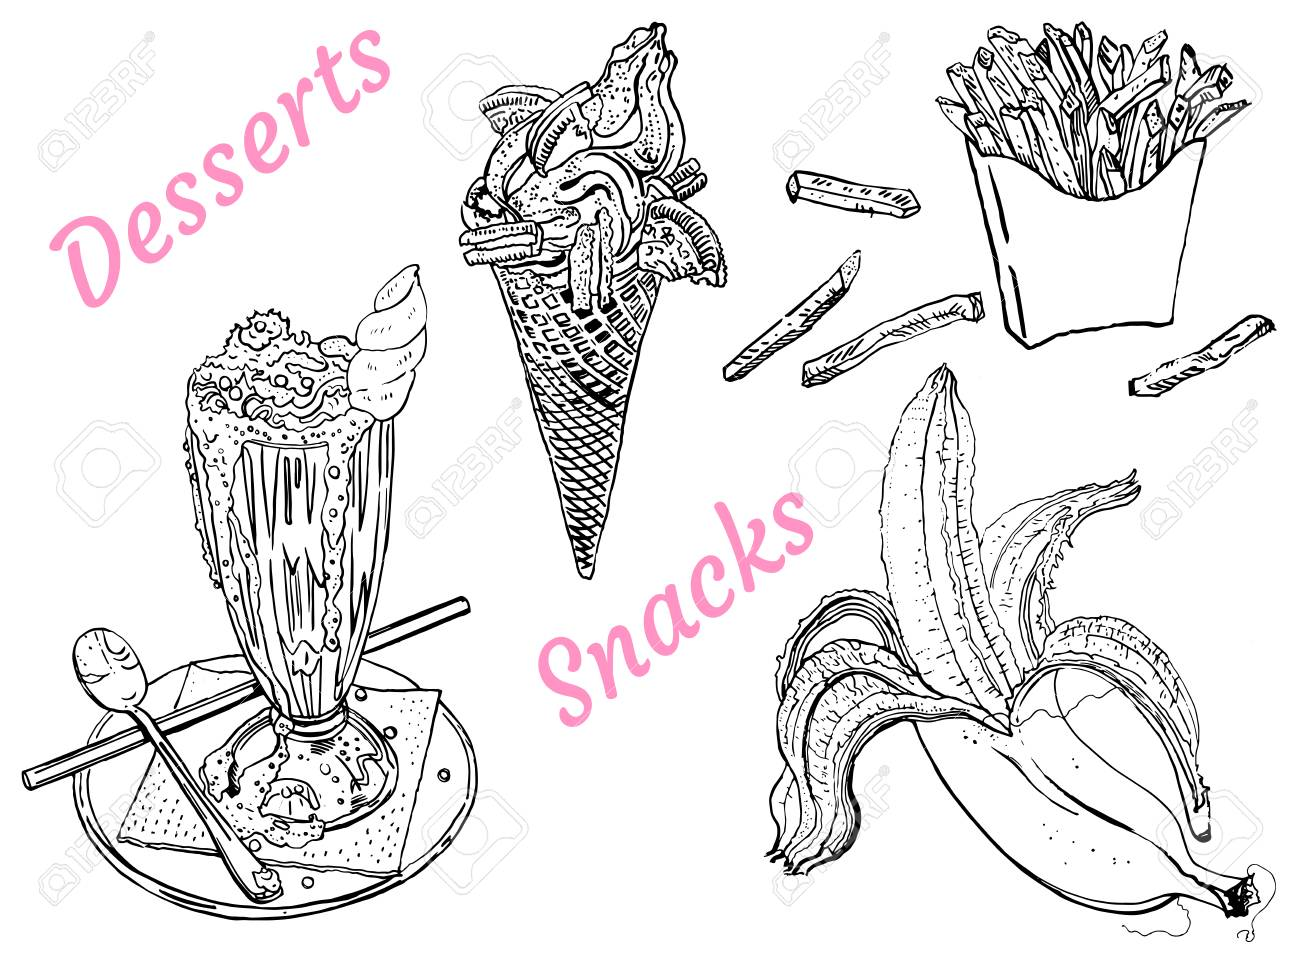 snacks and desserts milk shake ice cream banana french fries line art outline coloring page isolated